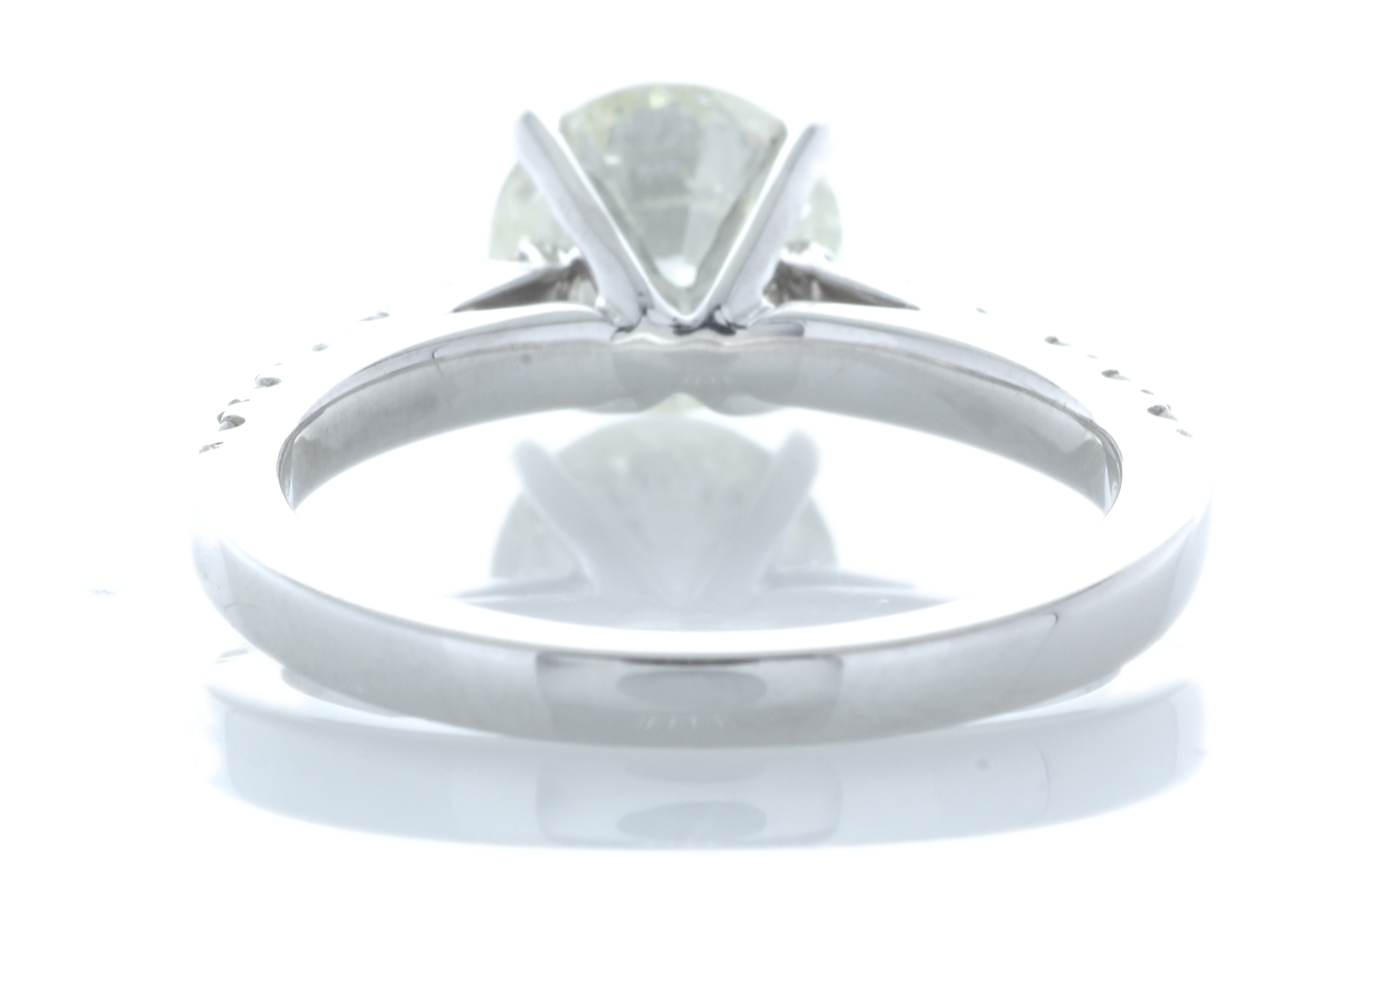 18ct White Gold Stone Set Shoulders Diamond Ring 1.92 Carats - Image 3 of 6